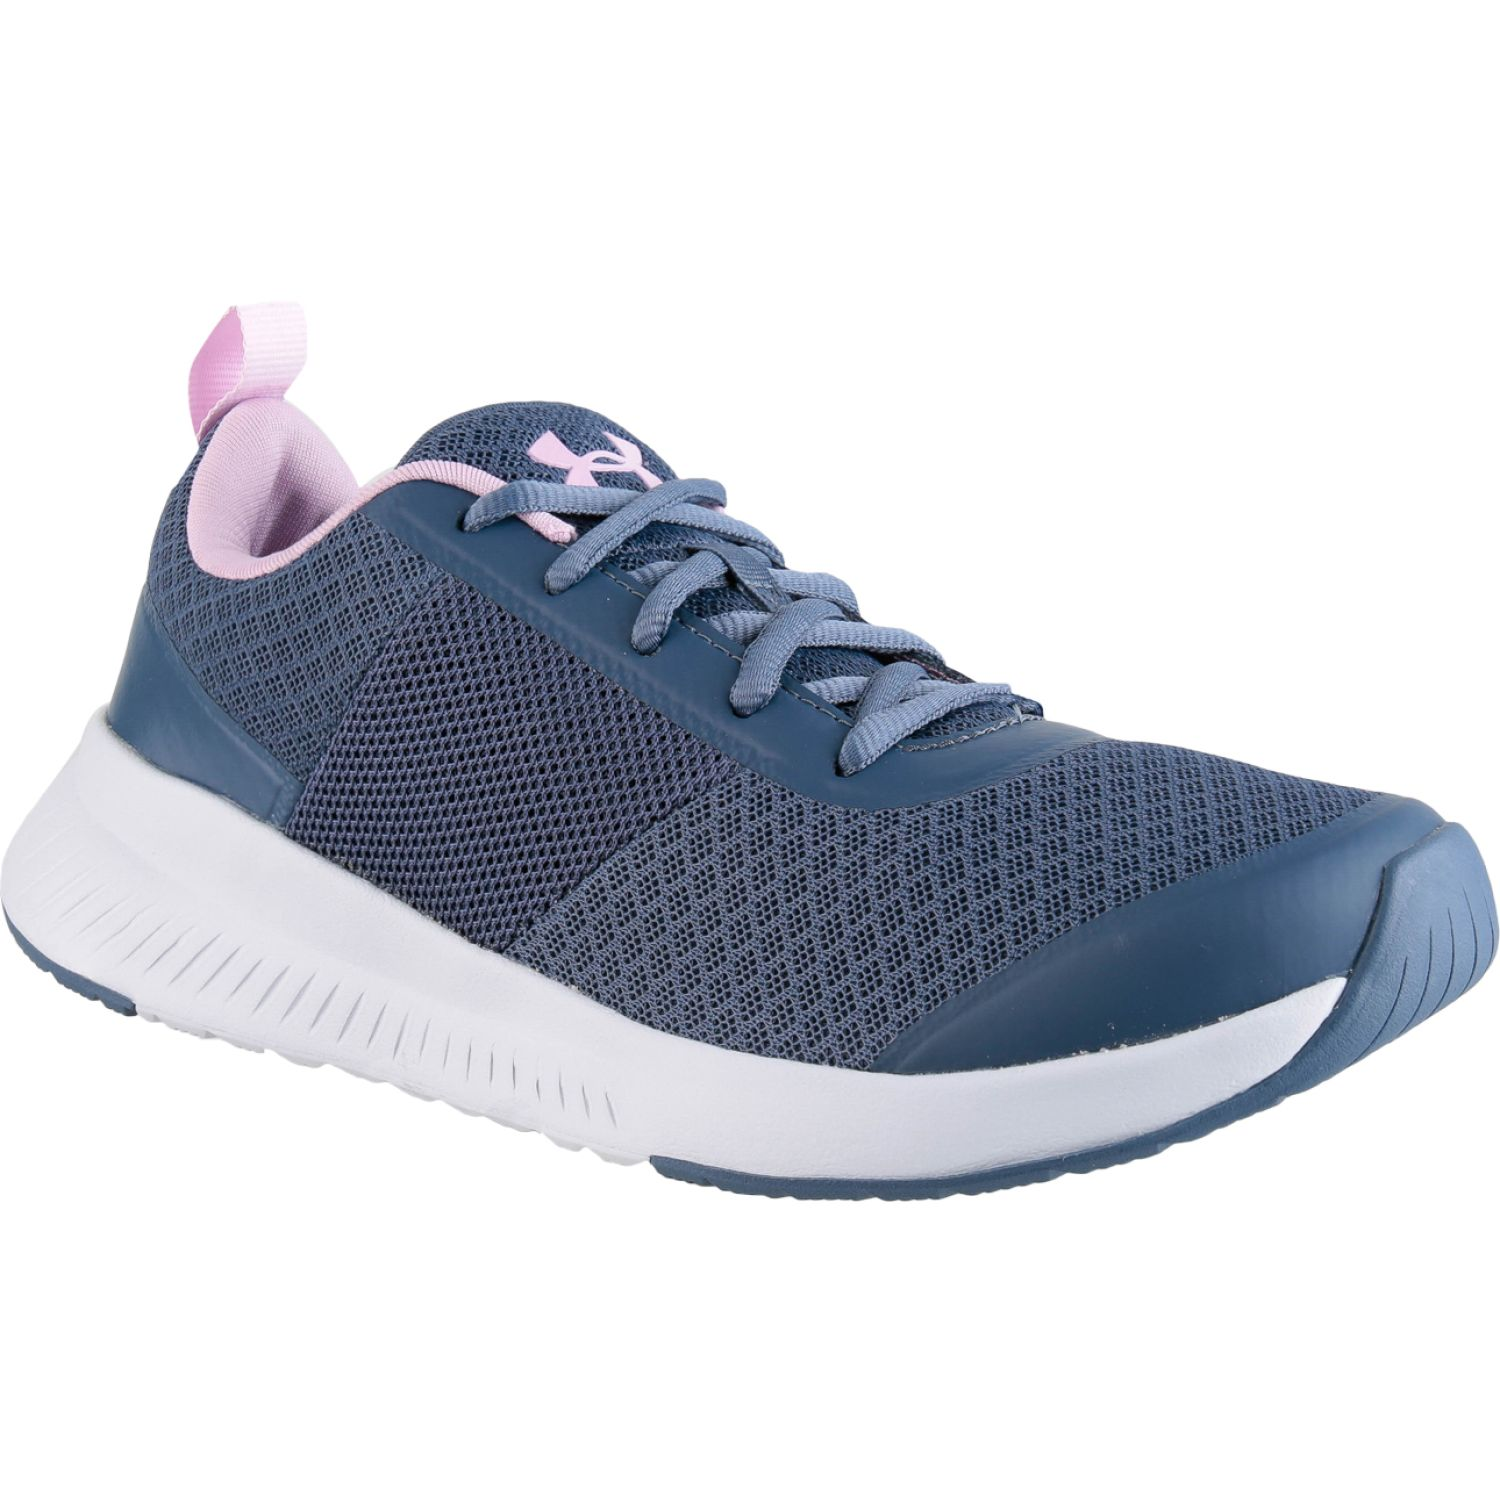 Under Armour ua w aura trainer Azul / rosado Mujeres